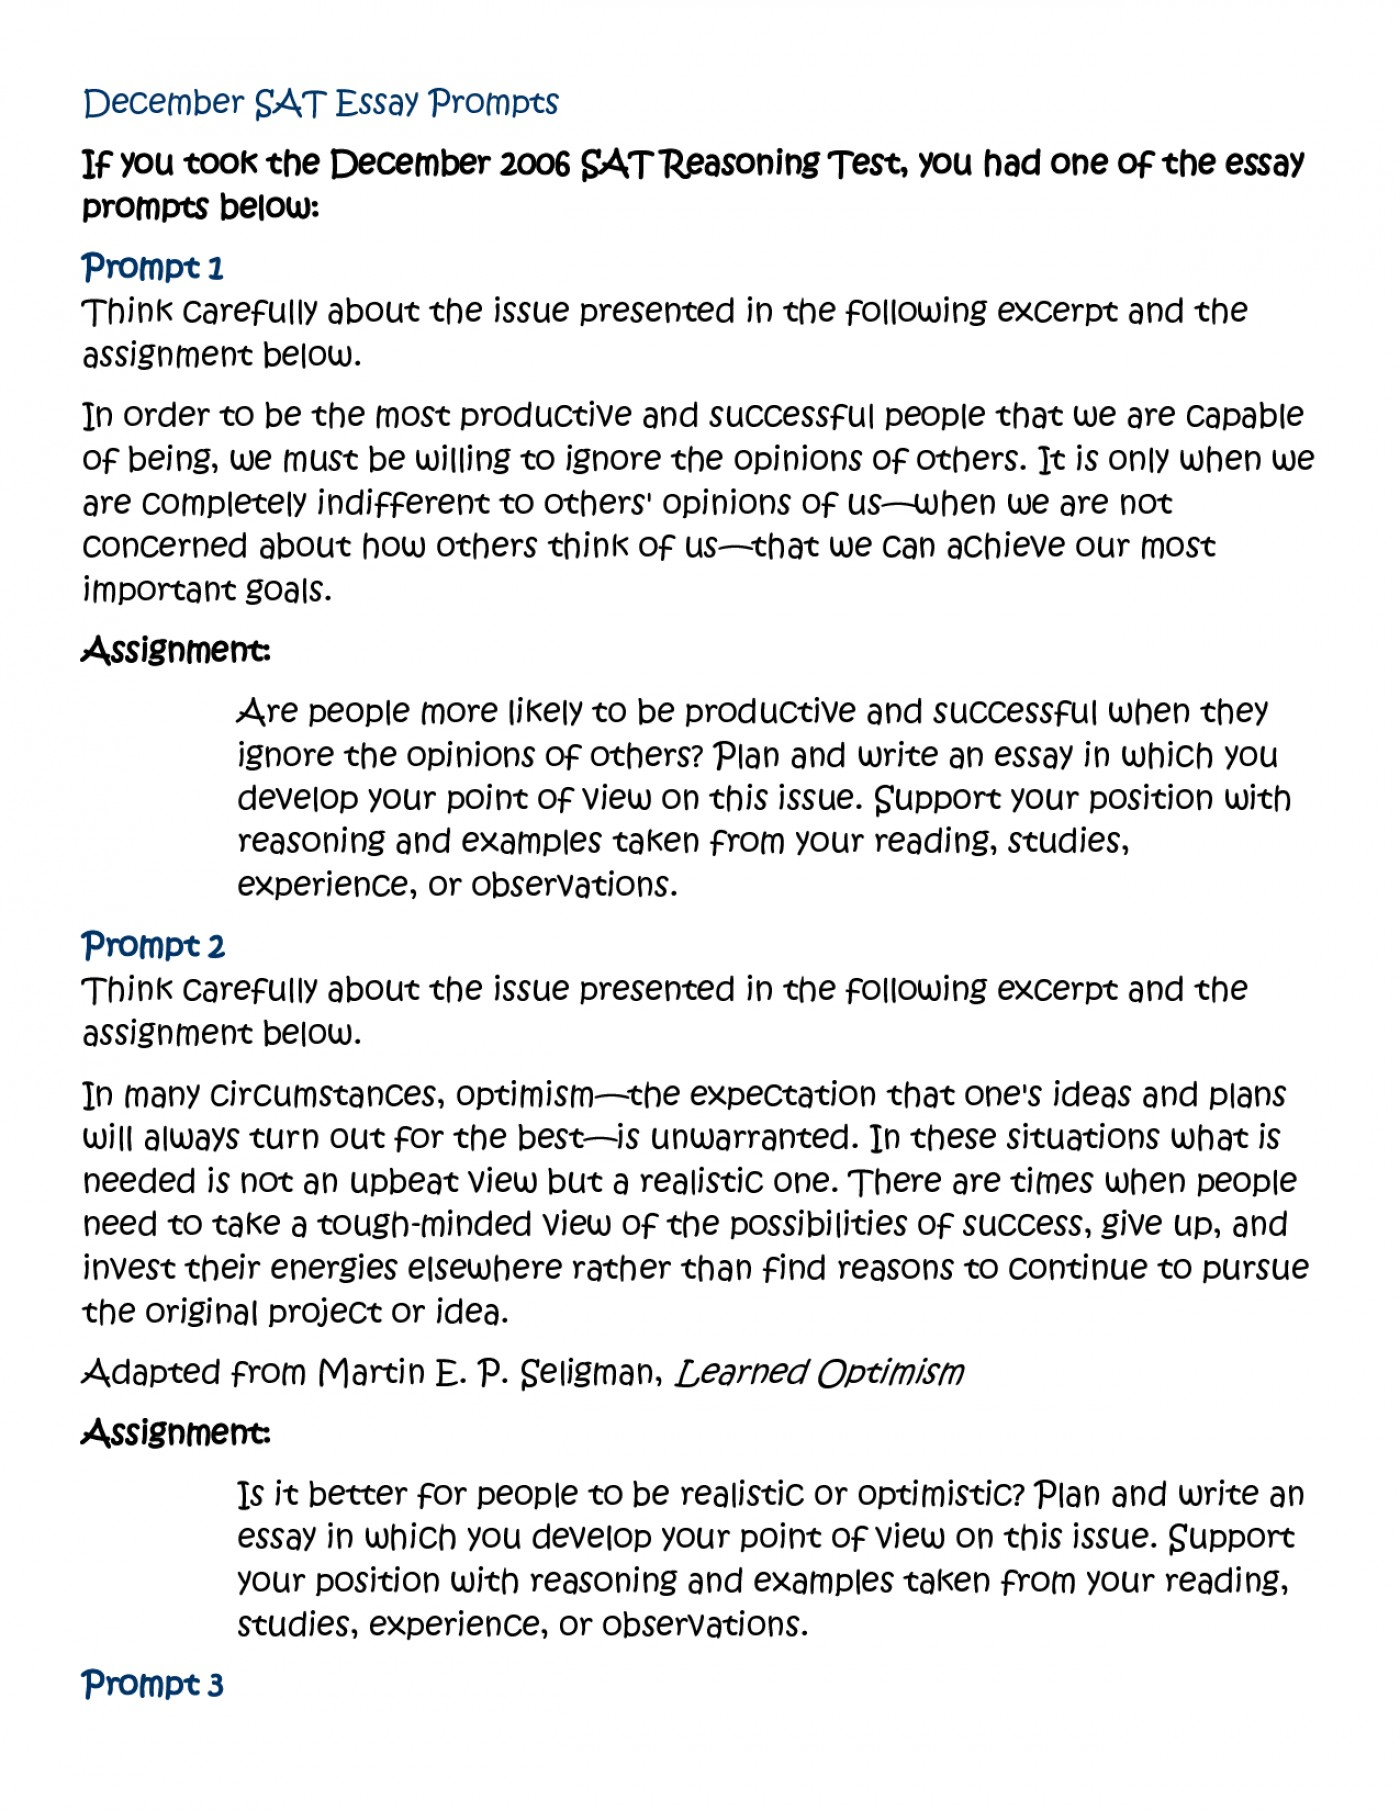 006 Essay Example What Is The Sat Ideas Of Questions Also Worksheet Grassmtnusa Com How To Write Faster And Exa Pdf Prepscholar Formula Examples Step By Breathtaking Score Out 24 Old 2017 1400